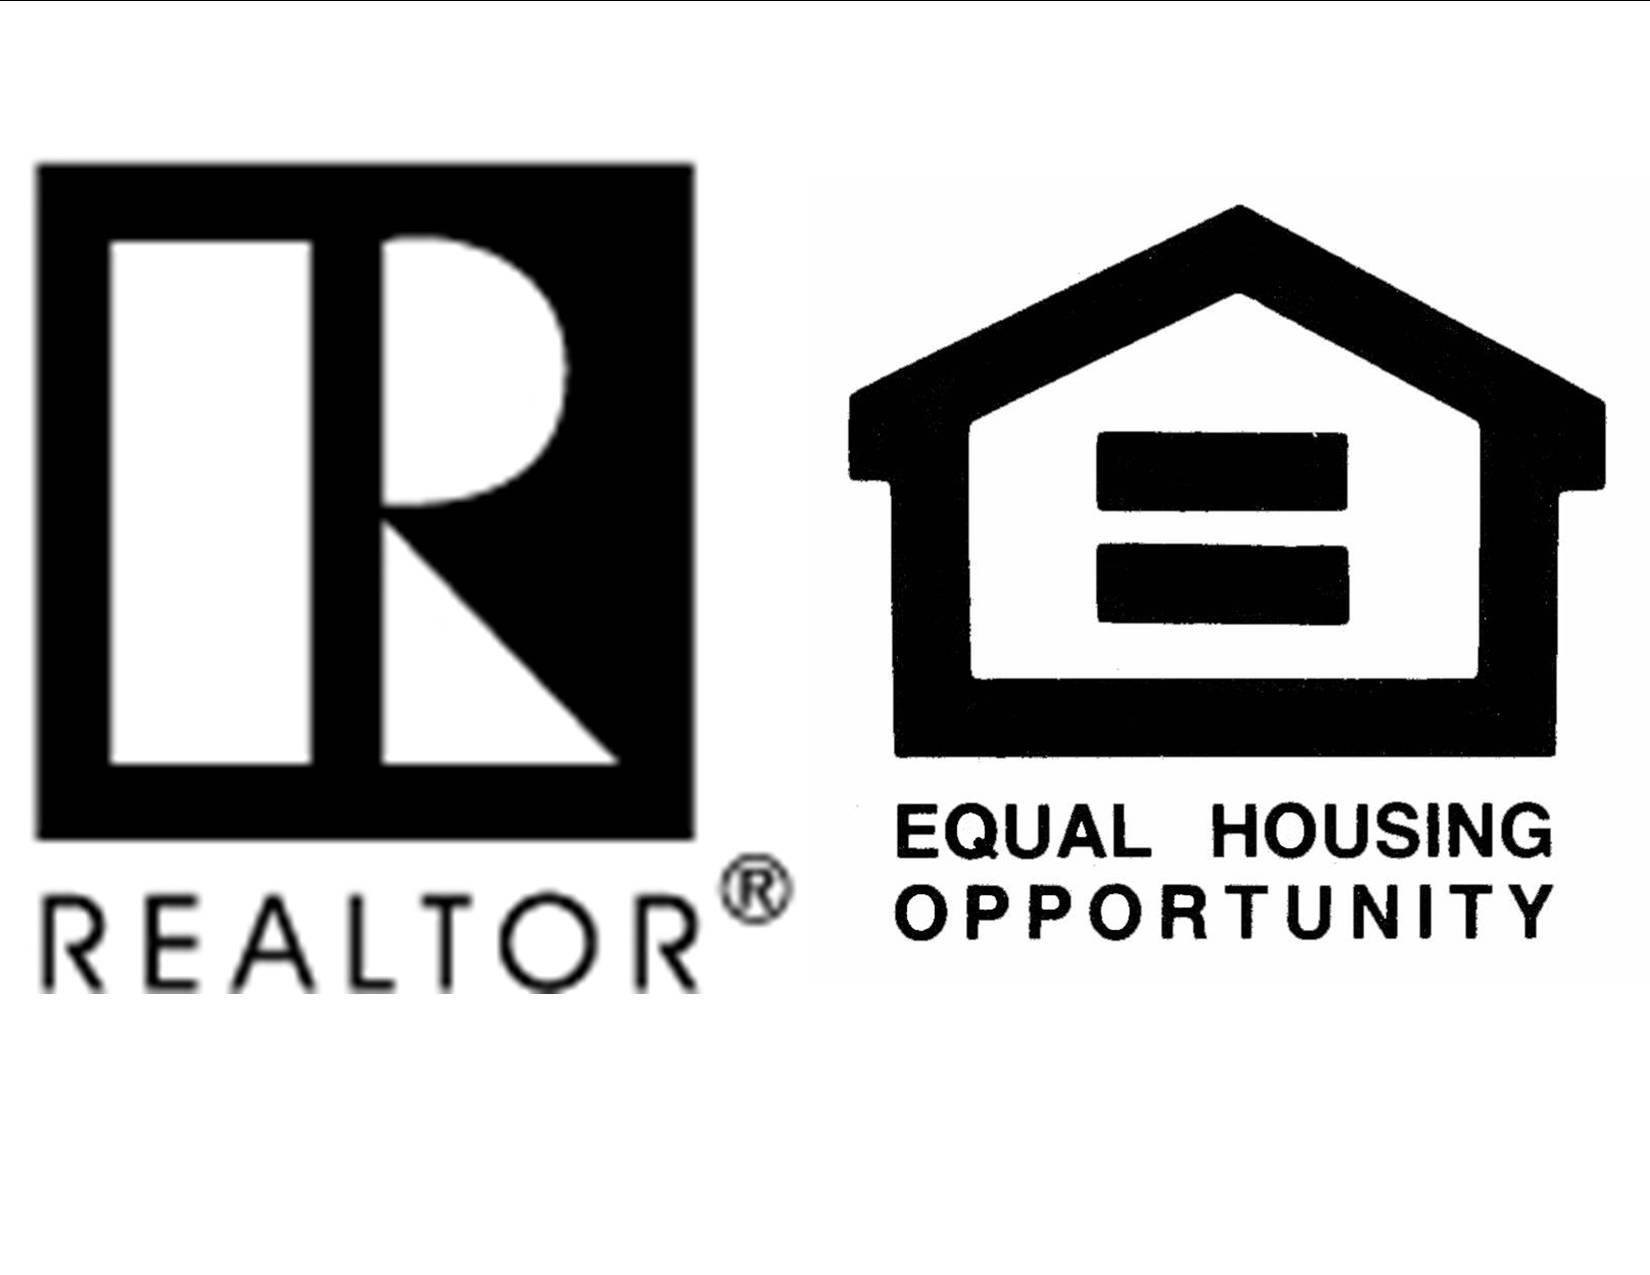 Equal Housing Opportunity Logo - Equal Opportunity Fair Housing Logo N3 free image